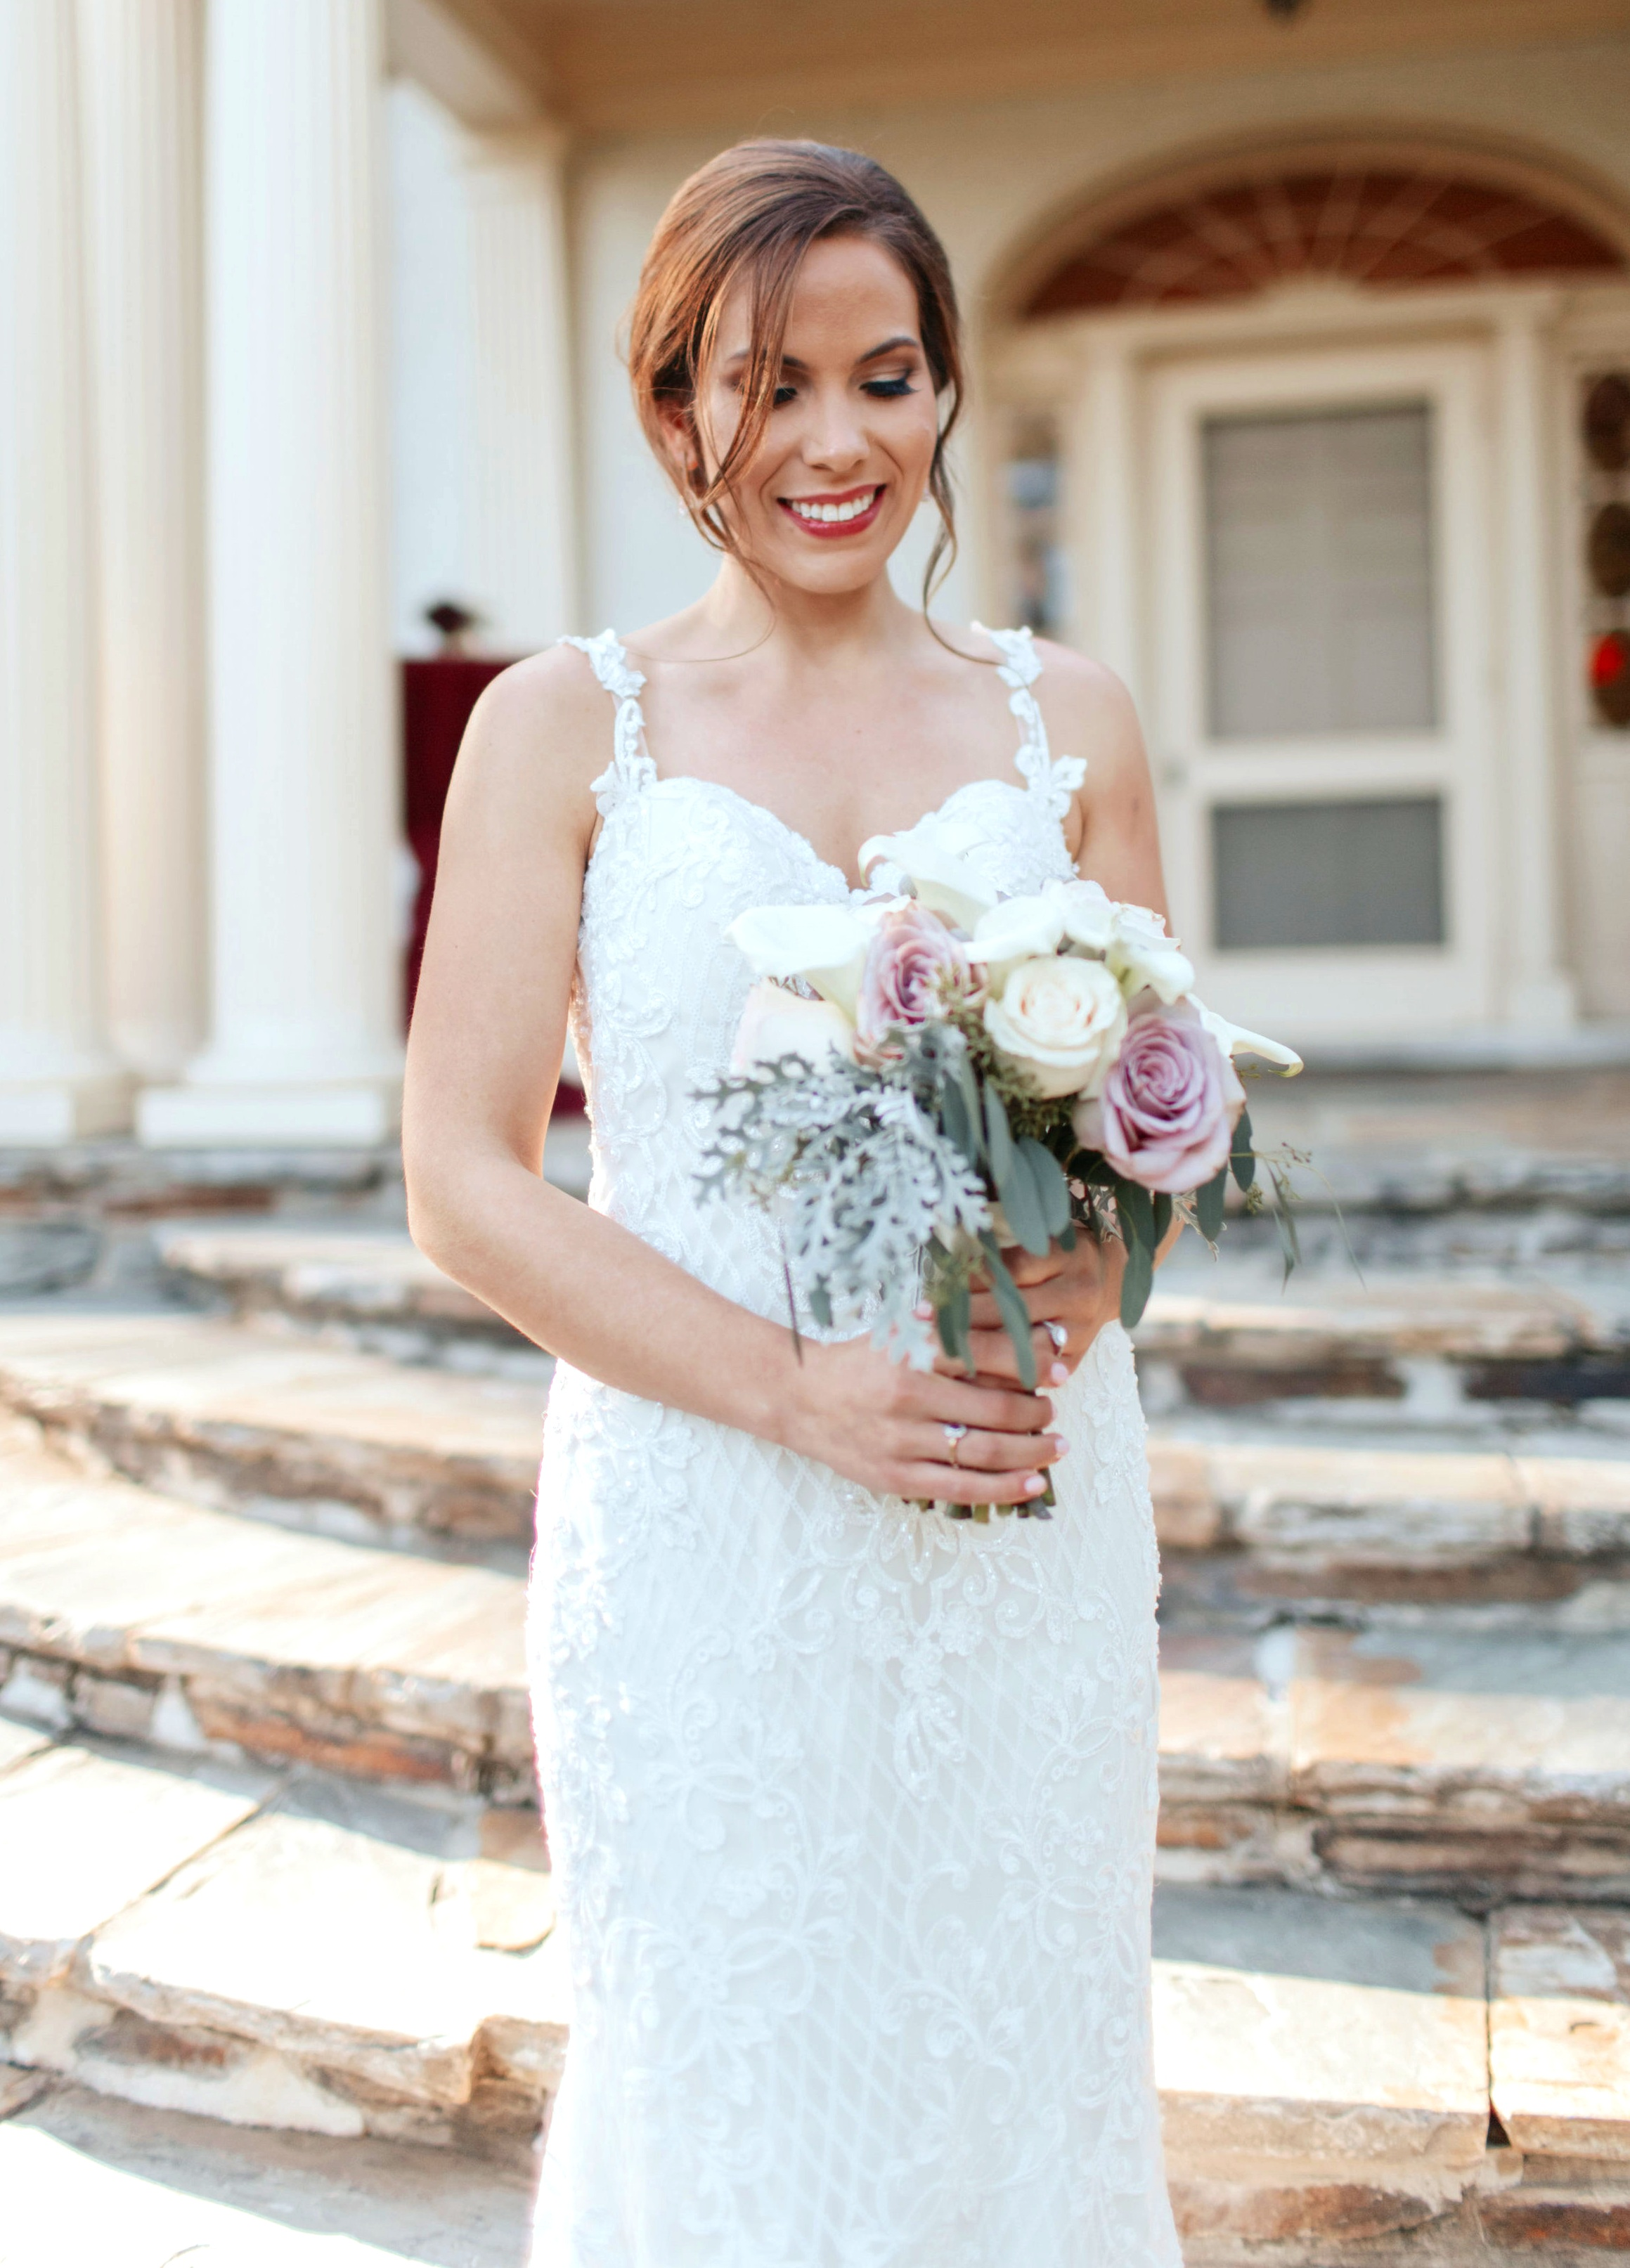 Leesburg, VA | Karis Marie Photography